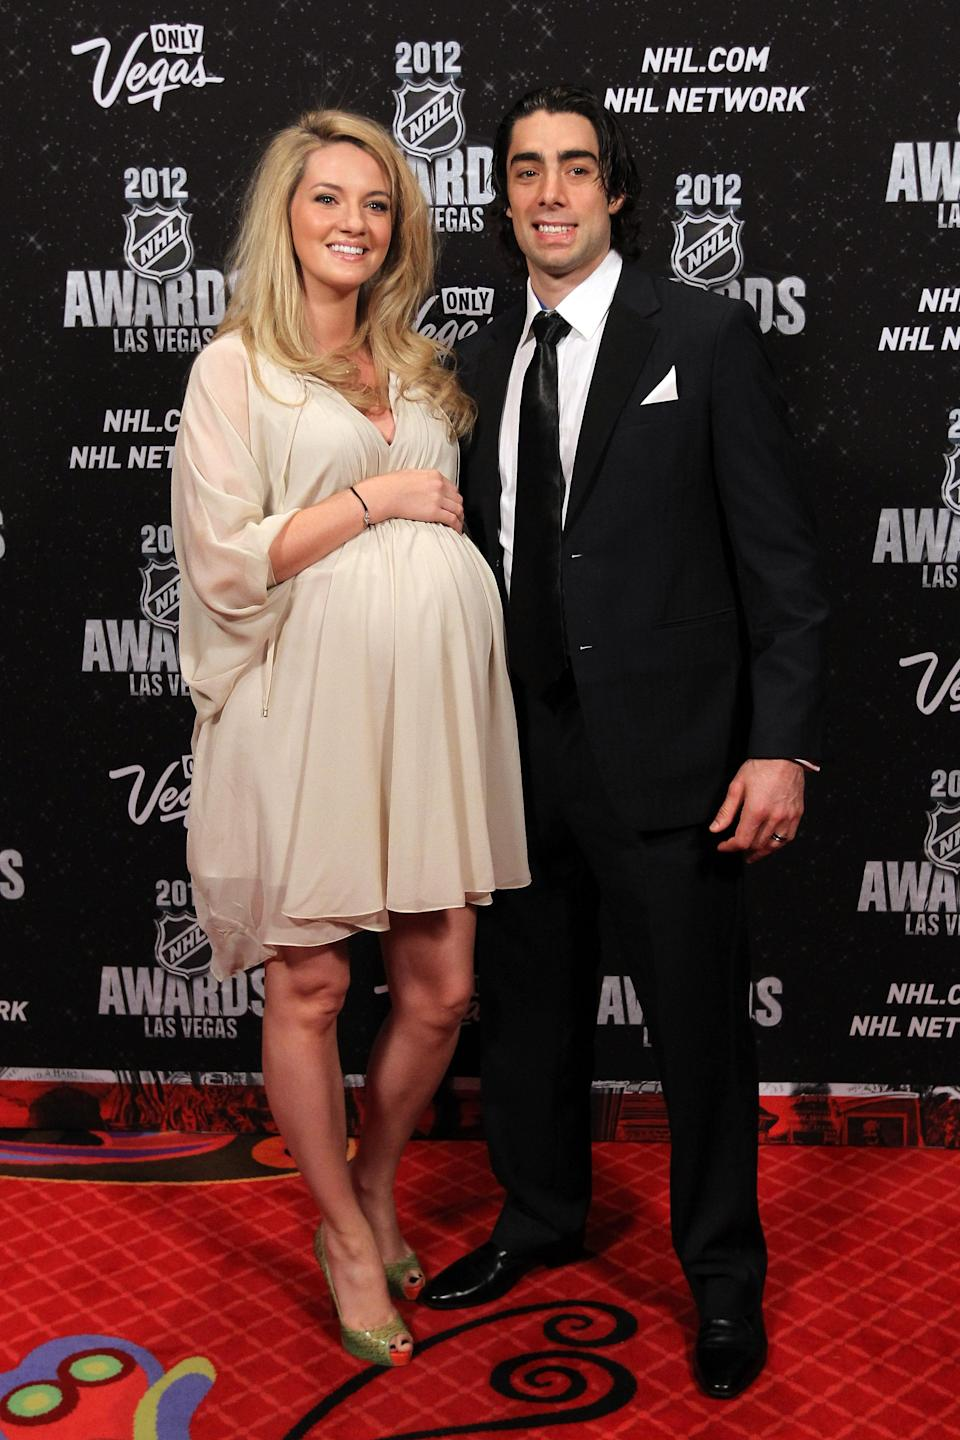 LAS VEGAS, NV - JUNE 20: Matt Moulson of the New York Islanders arrives with wife Alicia Blackman before the 2012 NHL Awards at the Encore Theater at the Wynn Las Vegas on June 20, 2012 in Las Vegas, Nevada. (Photo by Bruce Bennett/Getty Images)